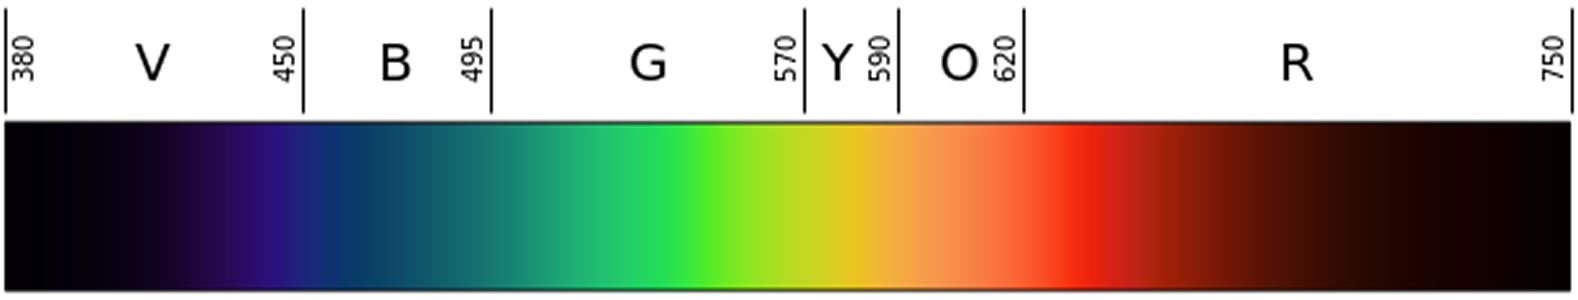 Image shows a linear representation of the visible light spectrum.